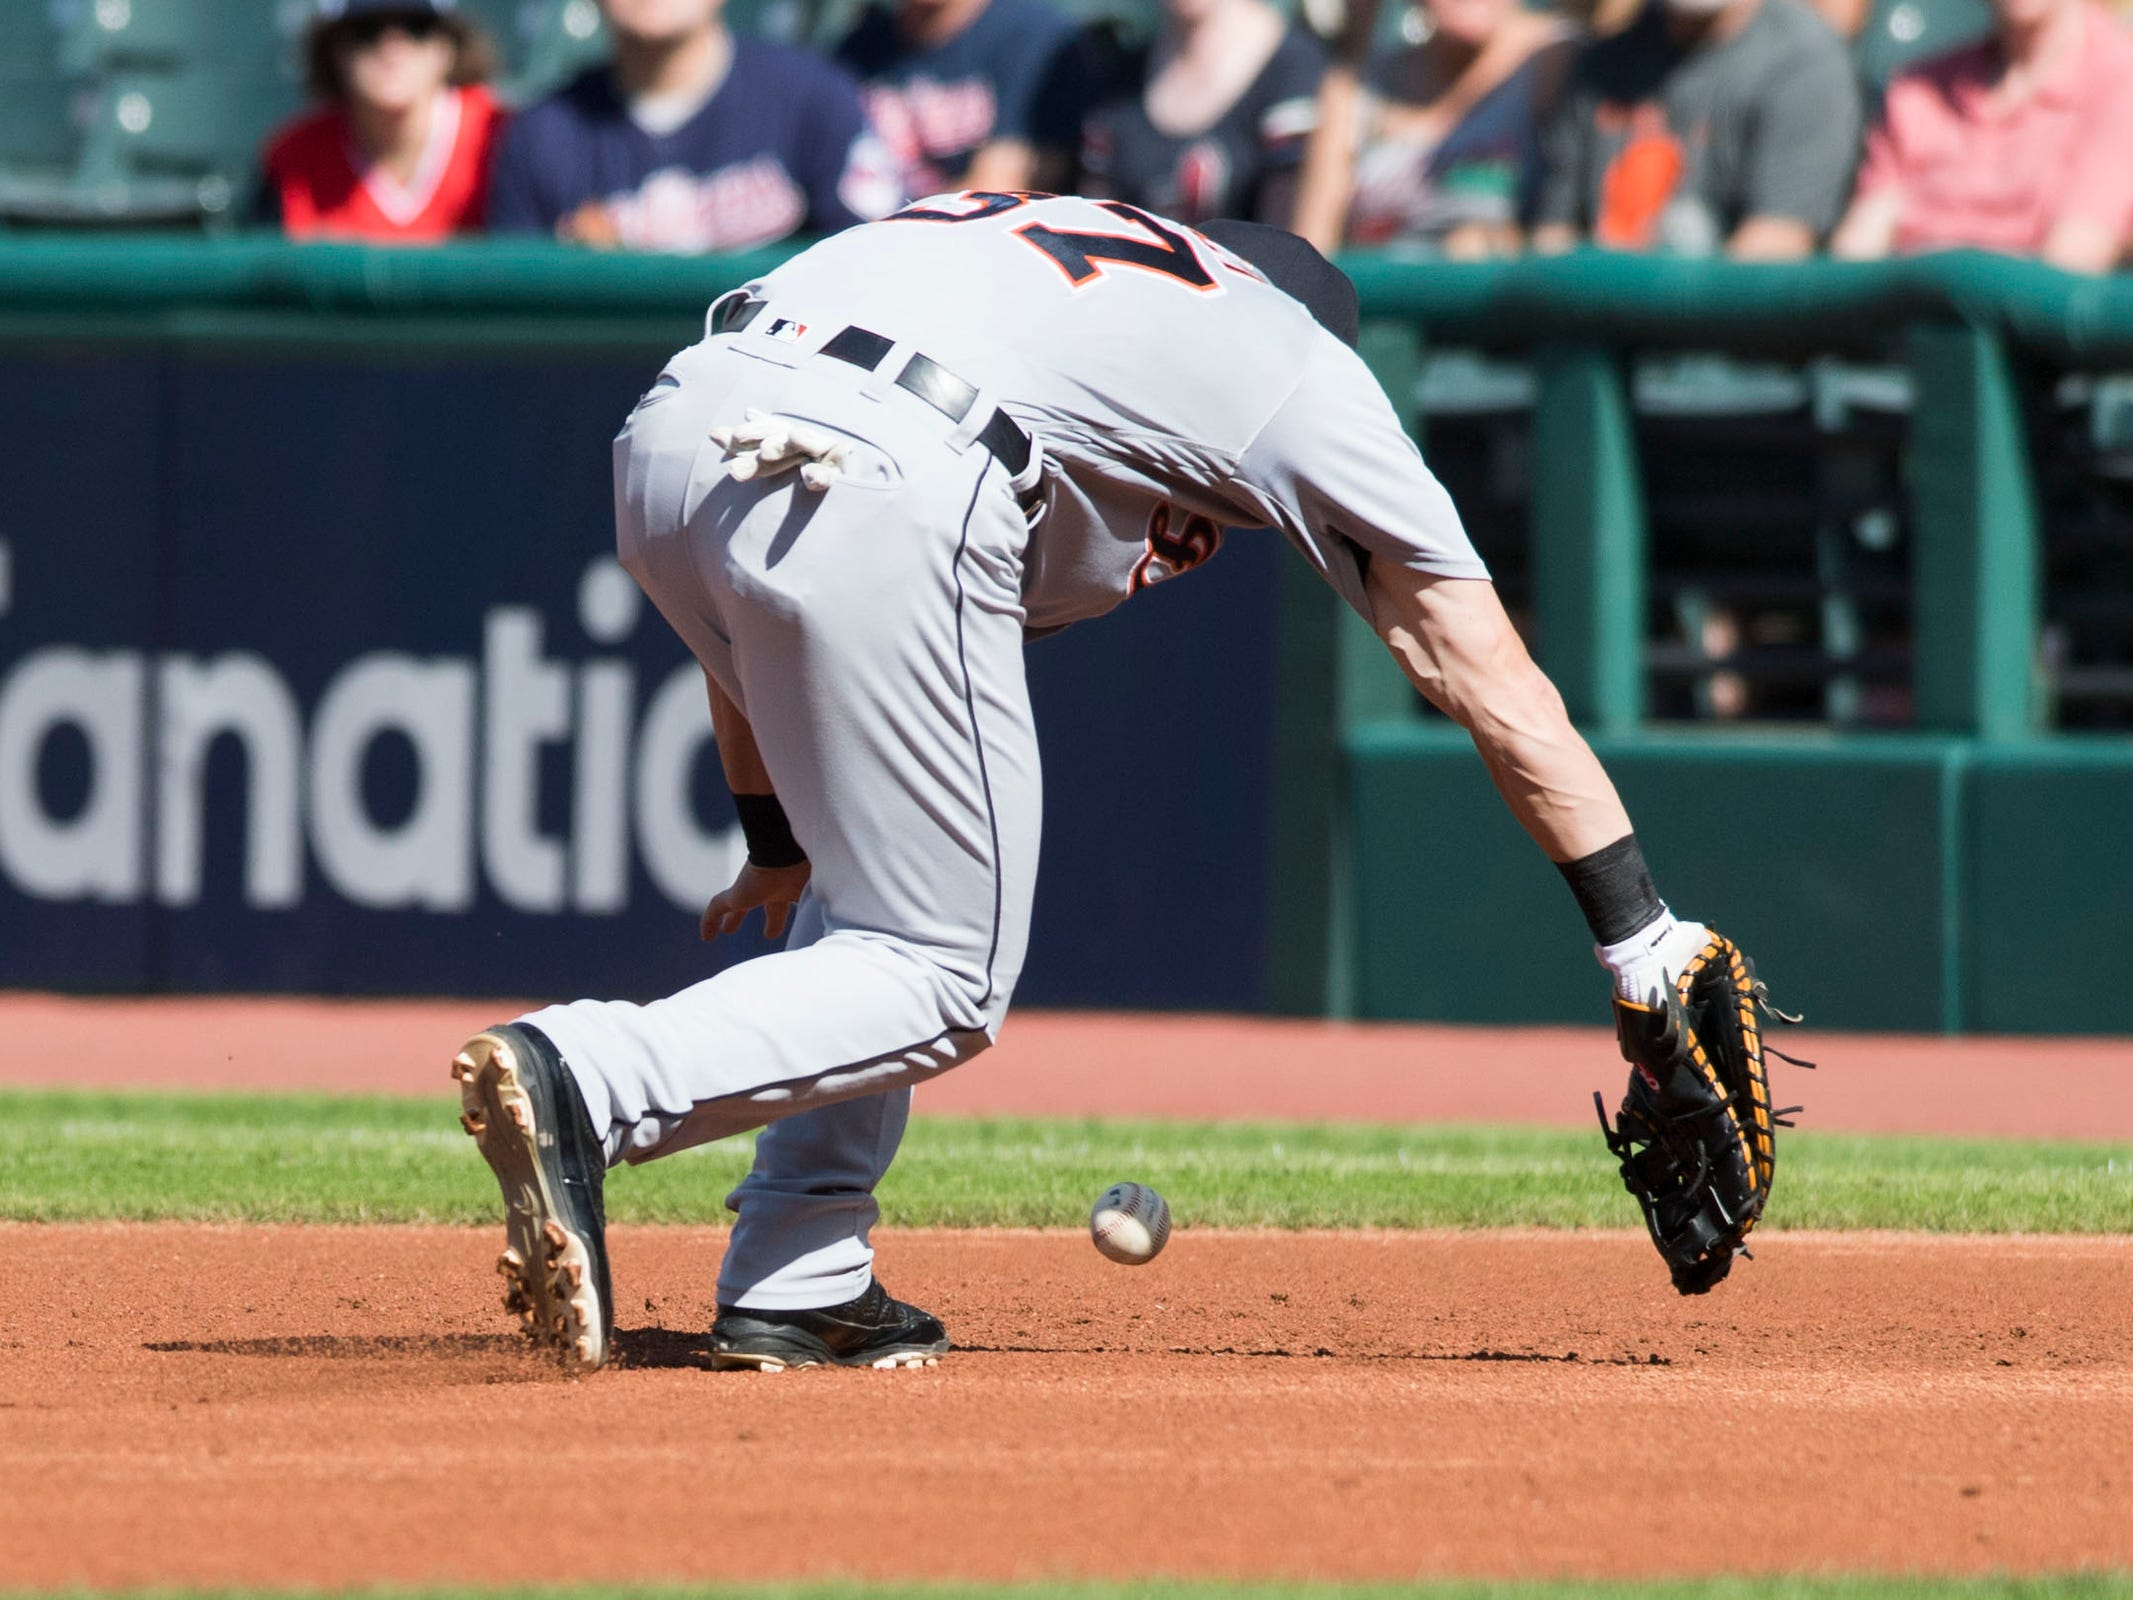 Sep 15, 2018; Cleveland, OH, USA; Detroit Tigers first baseman Jim Adduci (37) makes an error on a hit by Cleveland Indians designated hitter Edwin Encarnacion (not pictured) during the first inning at Progressive Field. Mandatory Credit: Ken Blaze-USA TODAY Sports